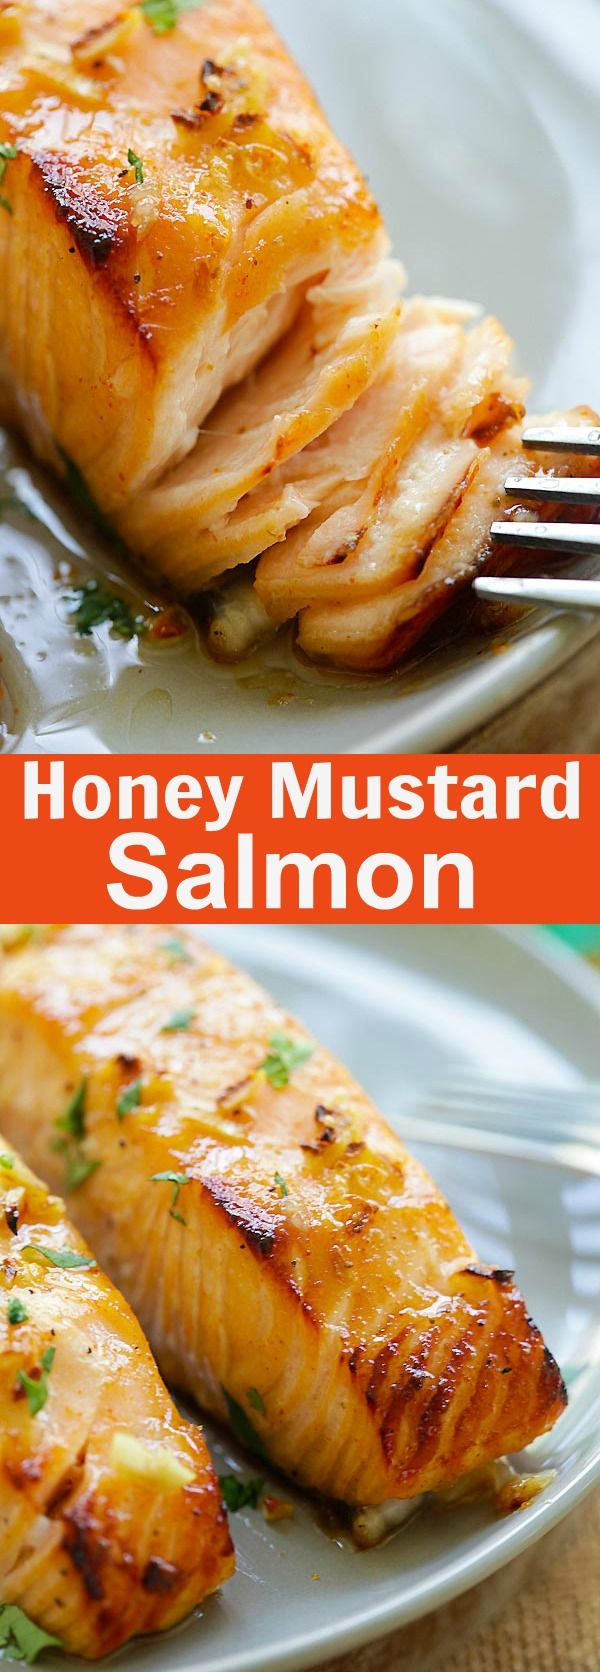 Honey Mustard Baked Salmon – moist, juicy and best baked salmon ever with honey mustard. Takes 10 mins active time and dinner is ready | rasamalaysia.com